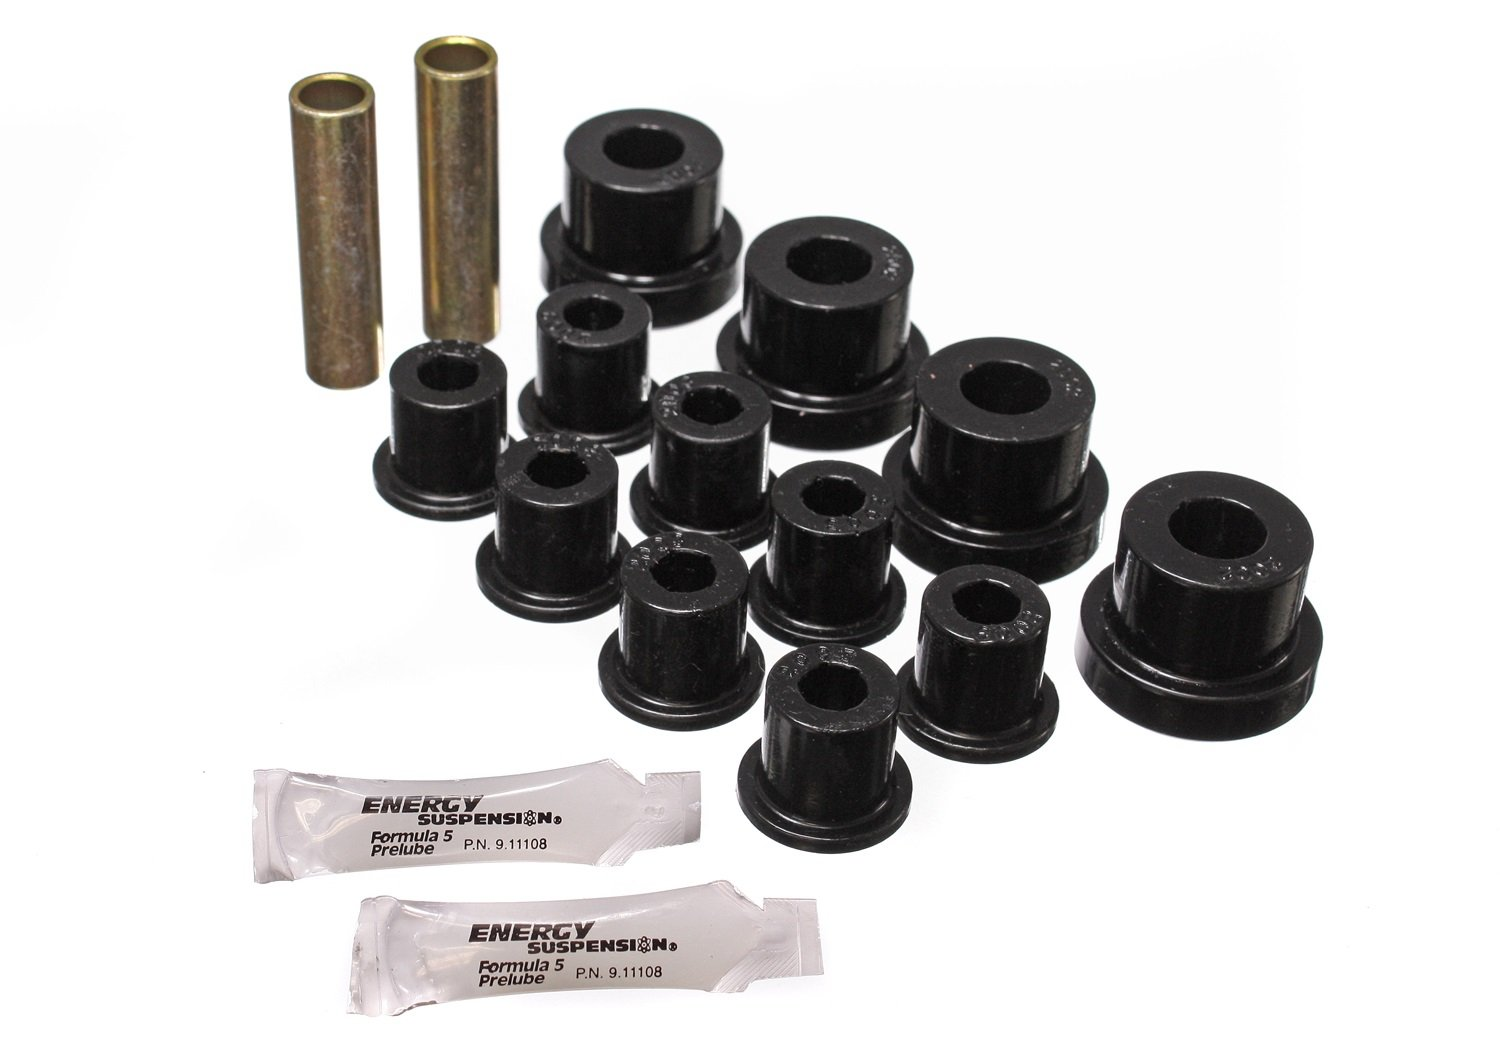 PA5083 fits 1986 to 1989 Performance Accessories #PA9628 Required For Auto Trans Made in America Toyota 4 Runner 2WD and 4WD 3 Body Lift Kit